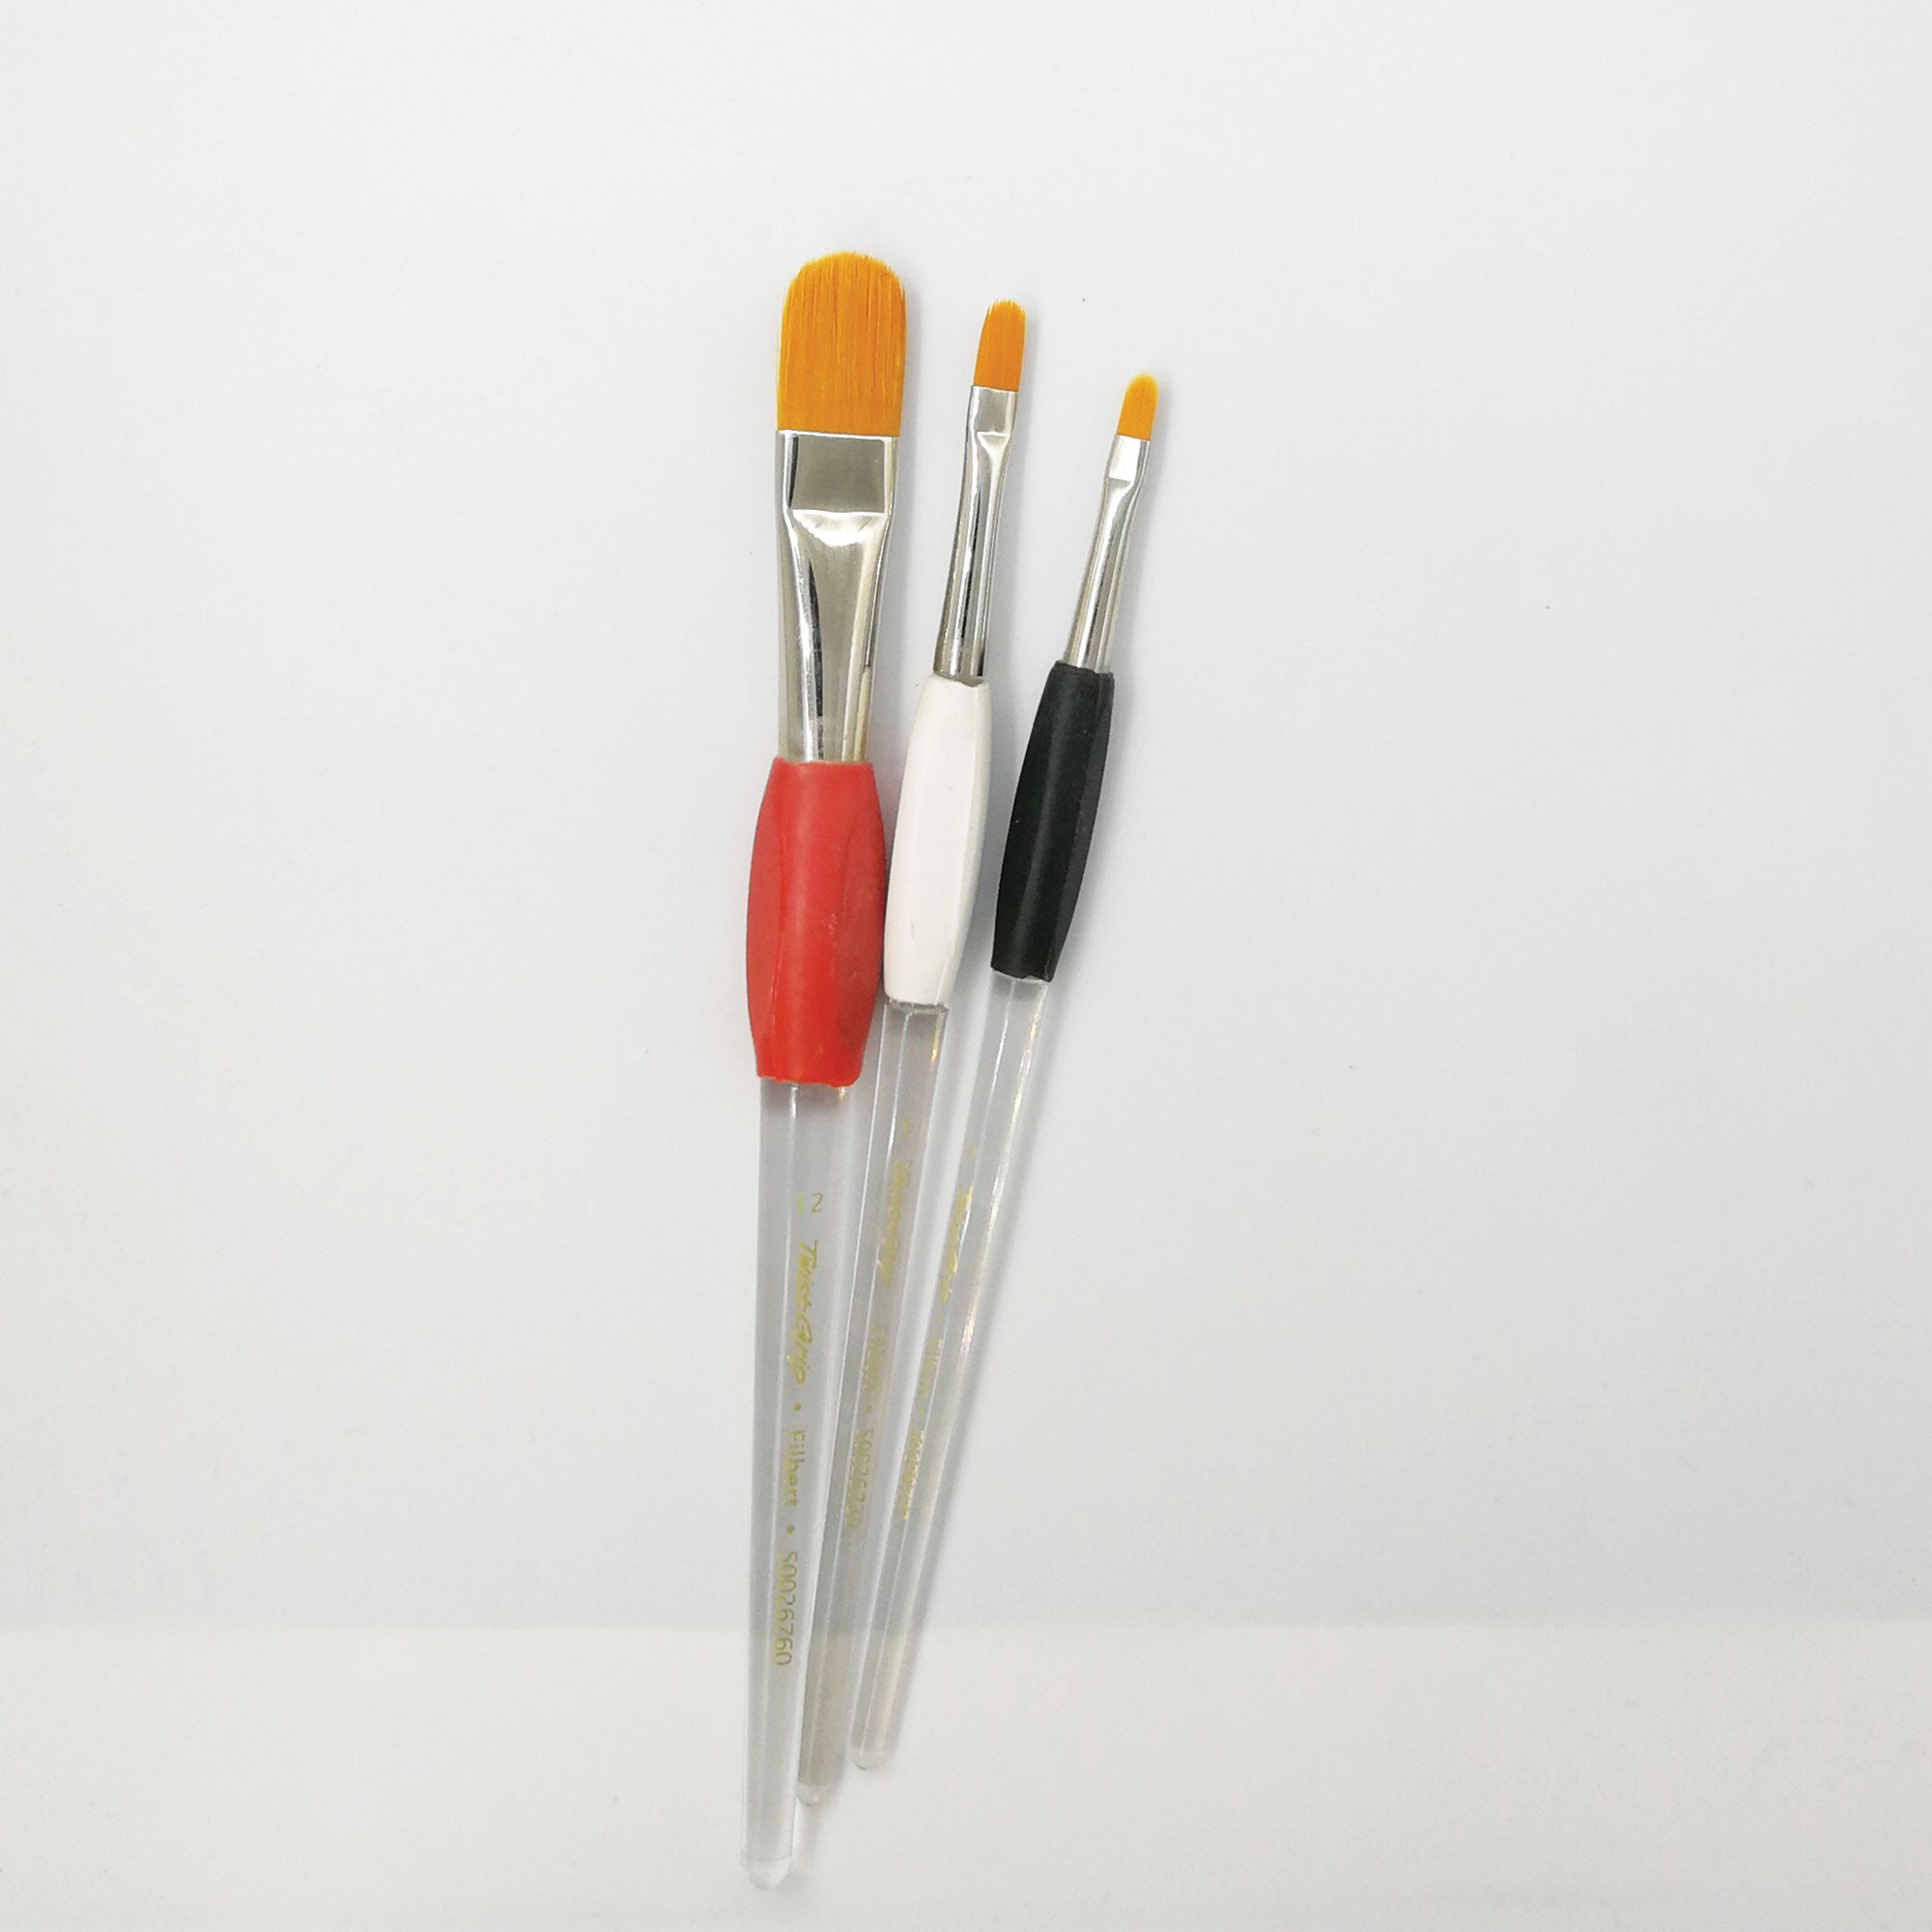 Pro Arte TwistGrip Brushes - Filberts